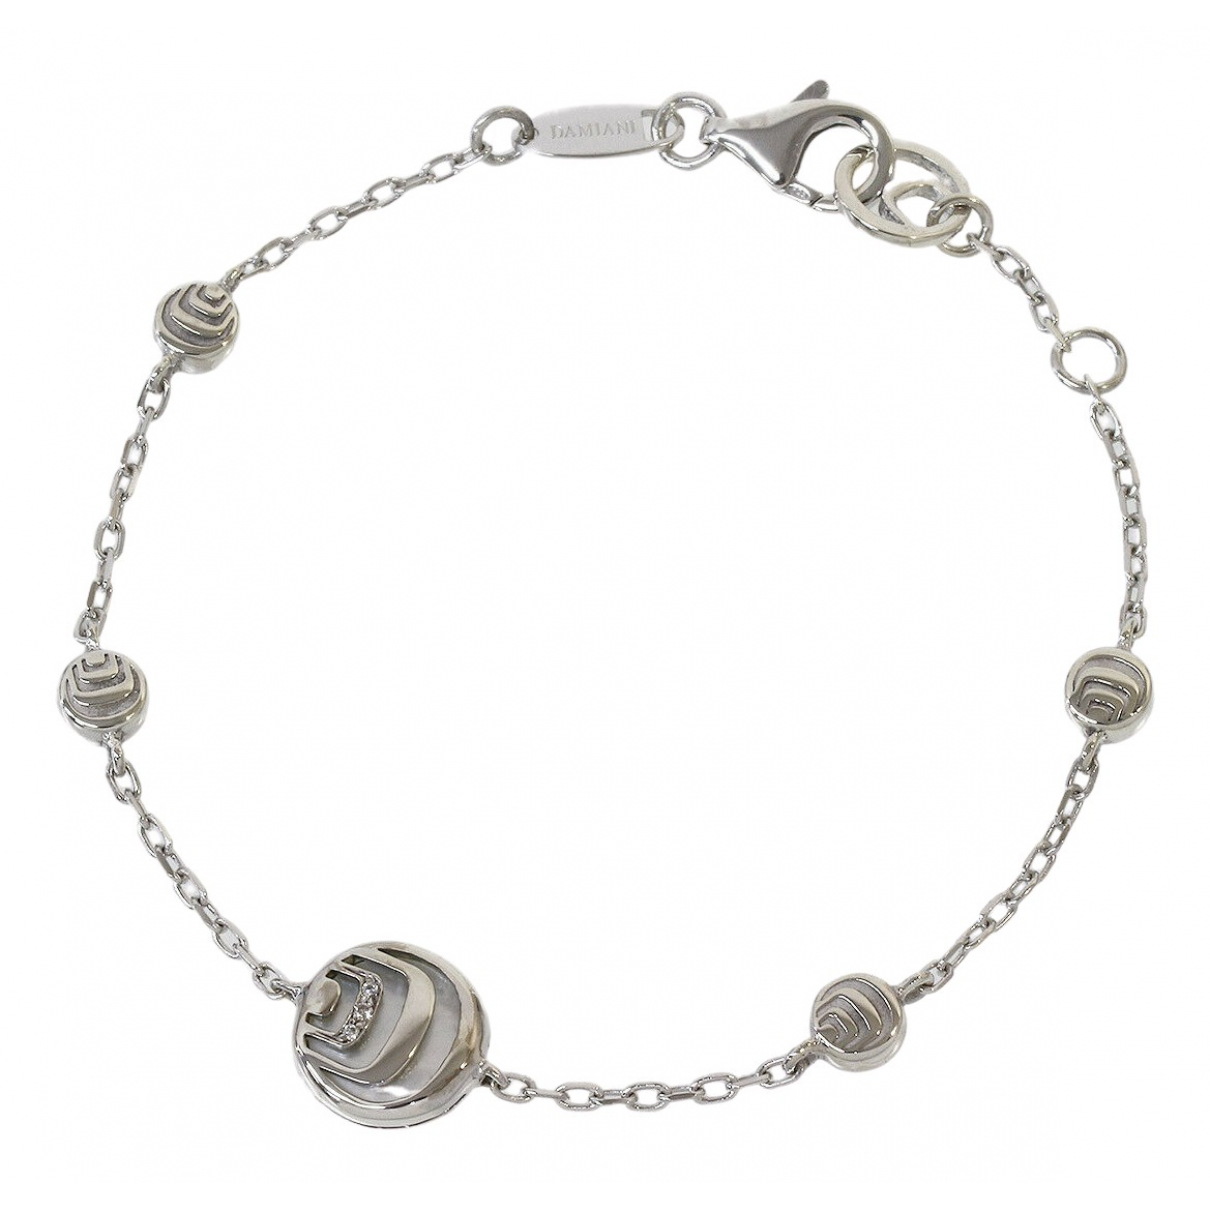 Damiani \N Armband in  Silber Weissgold